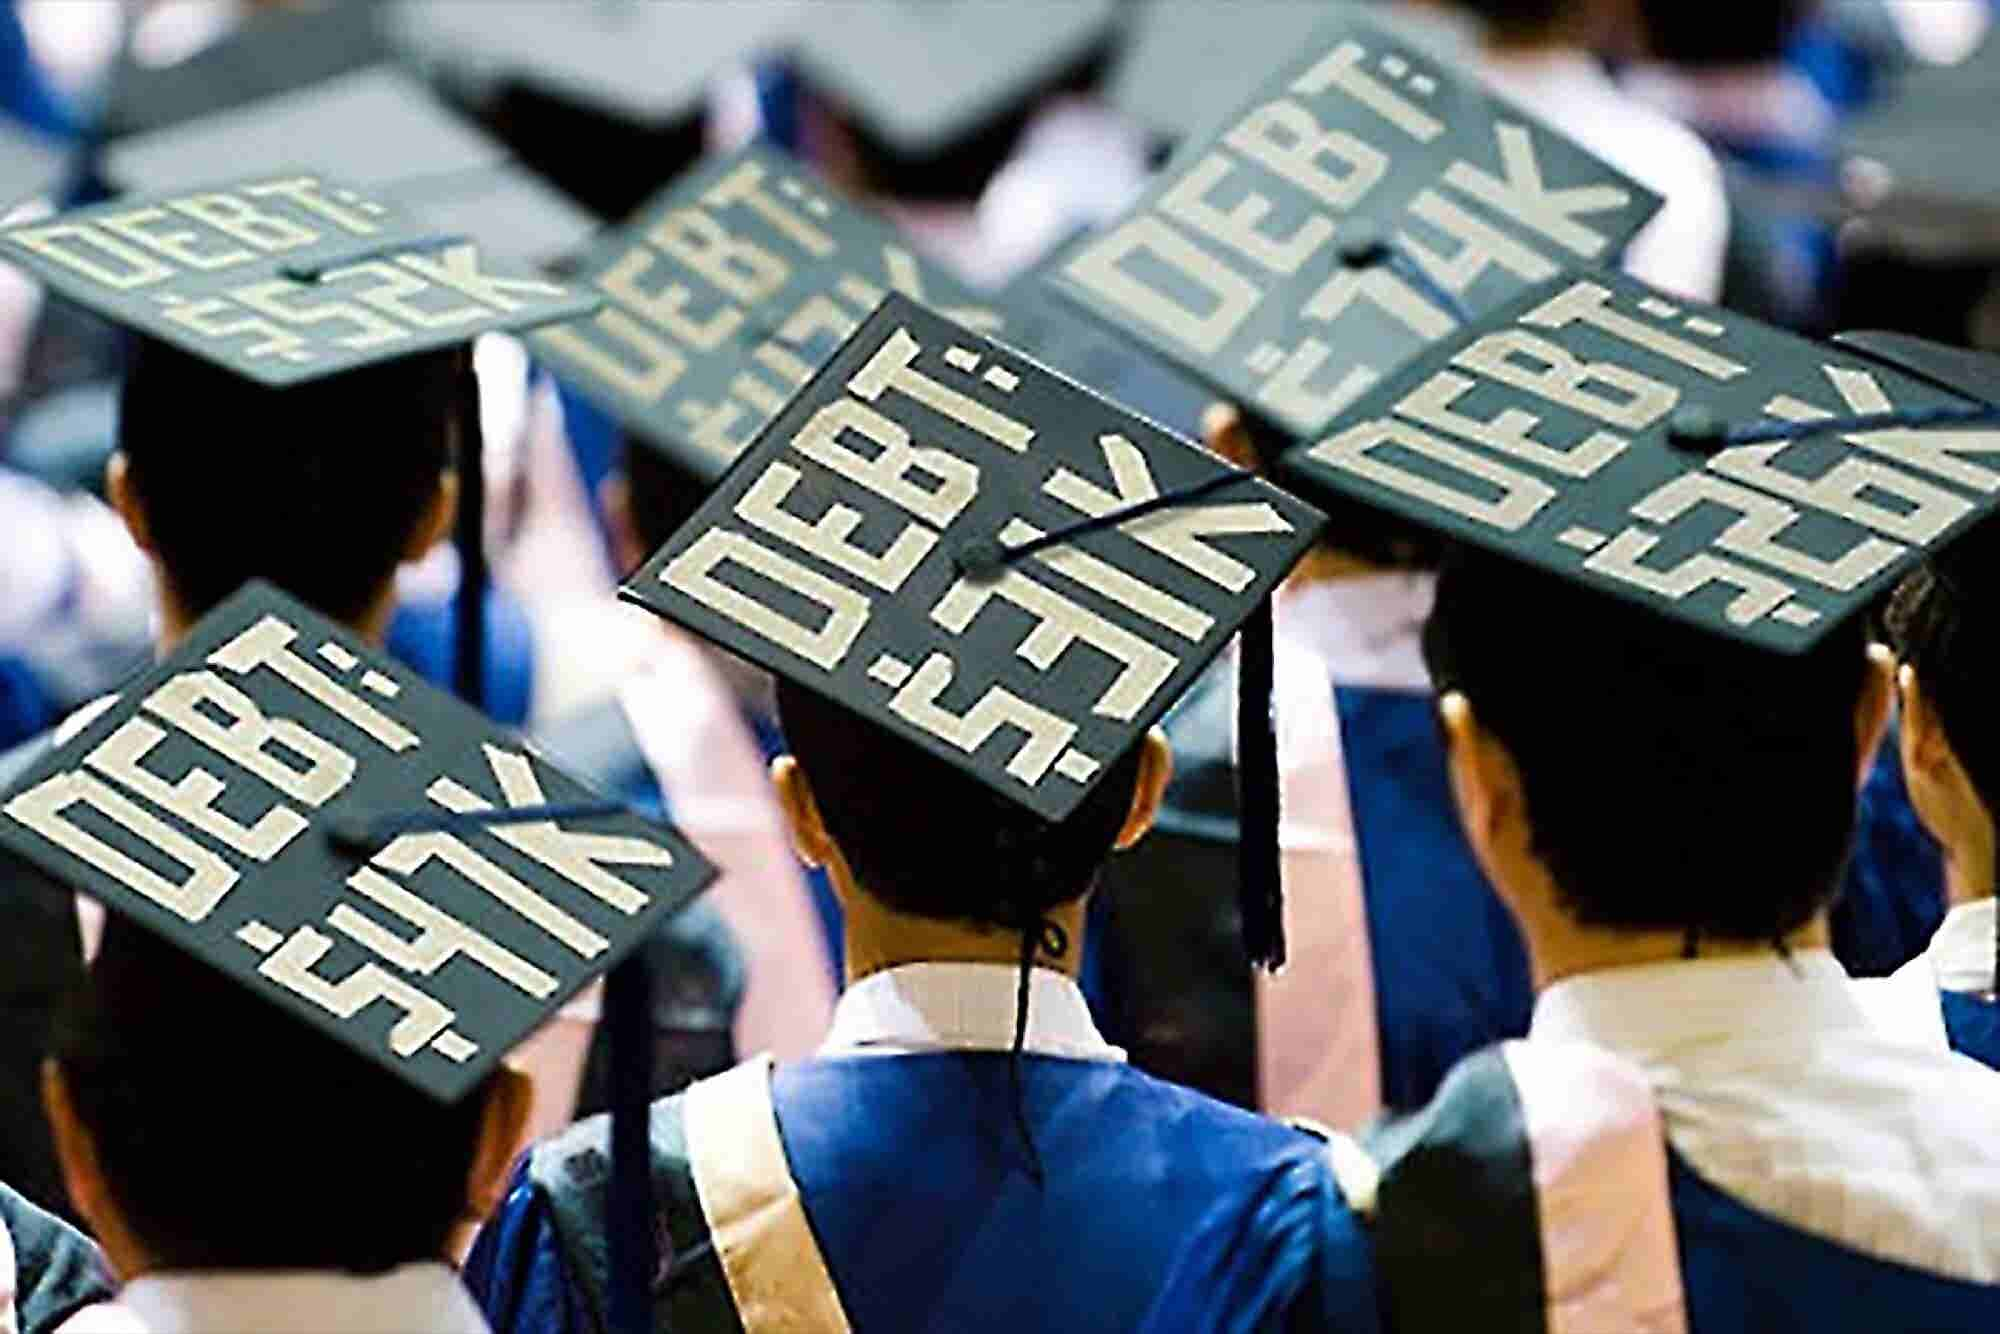 The Skinny on Widening Student Debt Loads (Infographic)